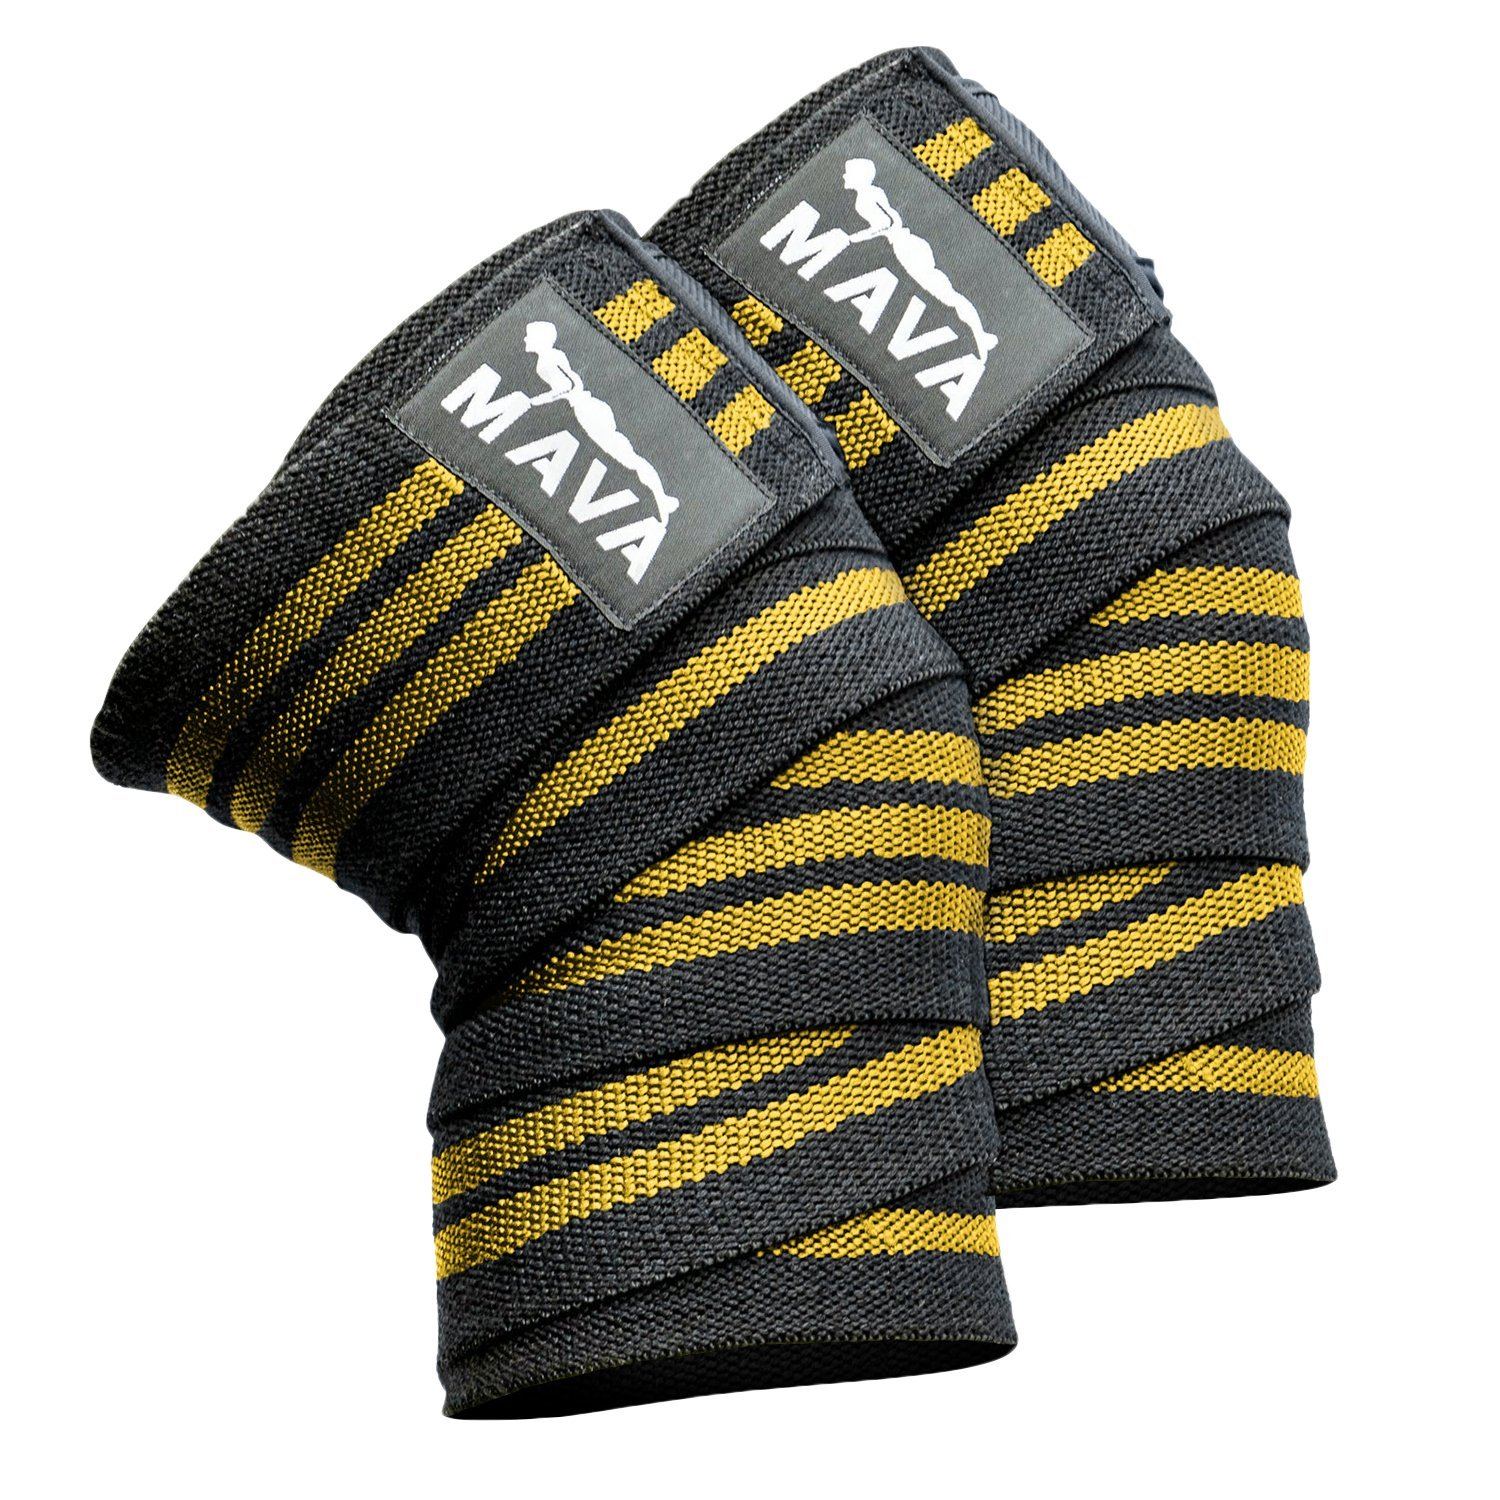 Knee Wraps for Exercise, Martial Art, Tennis, Weight Lifting, Running and Other Sports Needing Extra Support, Bracing Or Compression - Adjust Tension with Our Compression Wraps